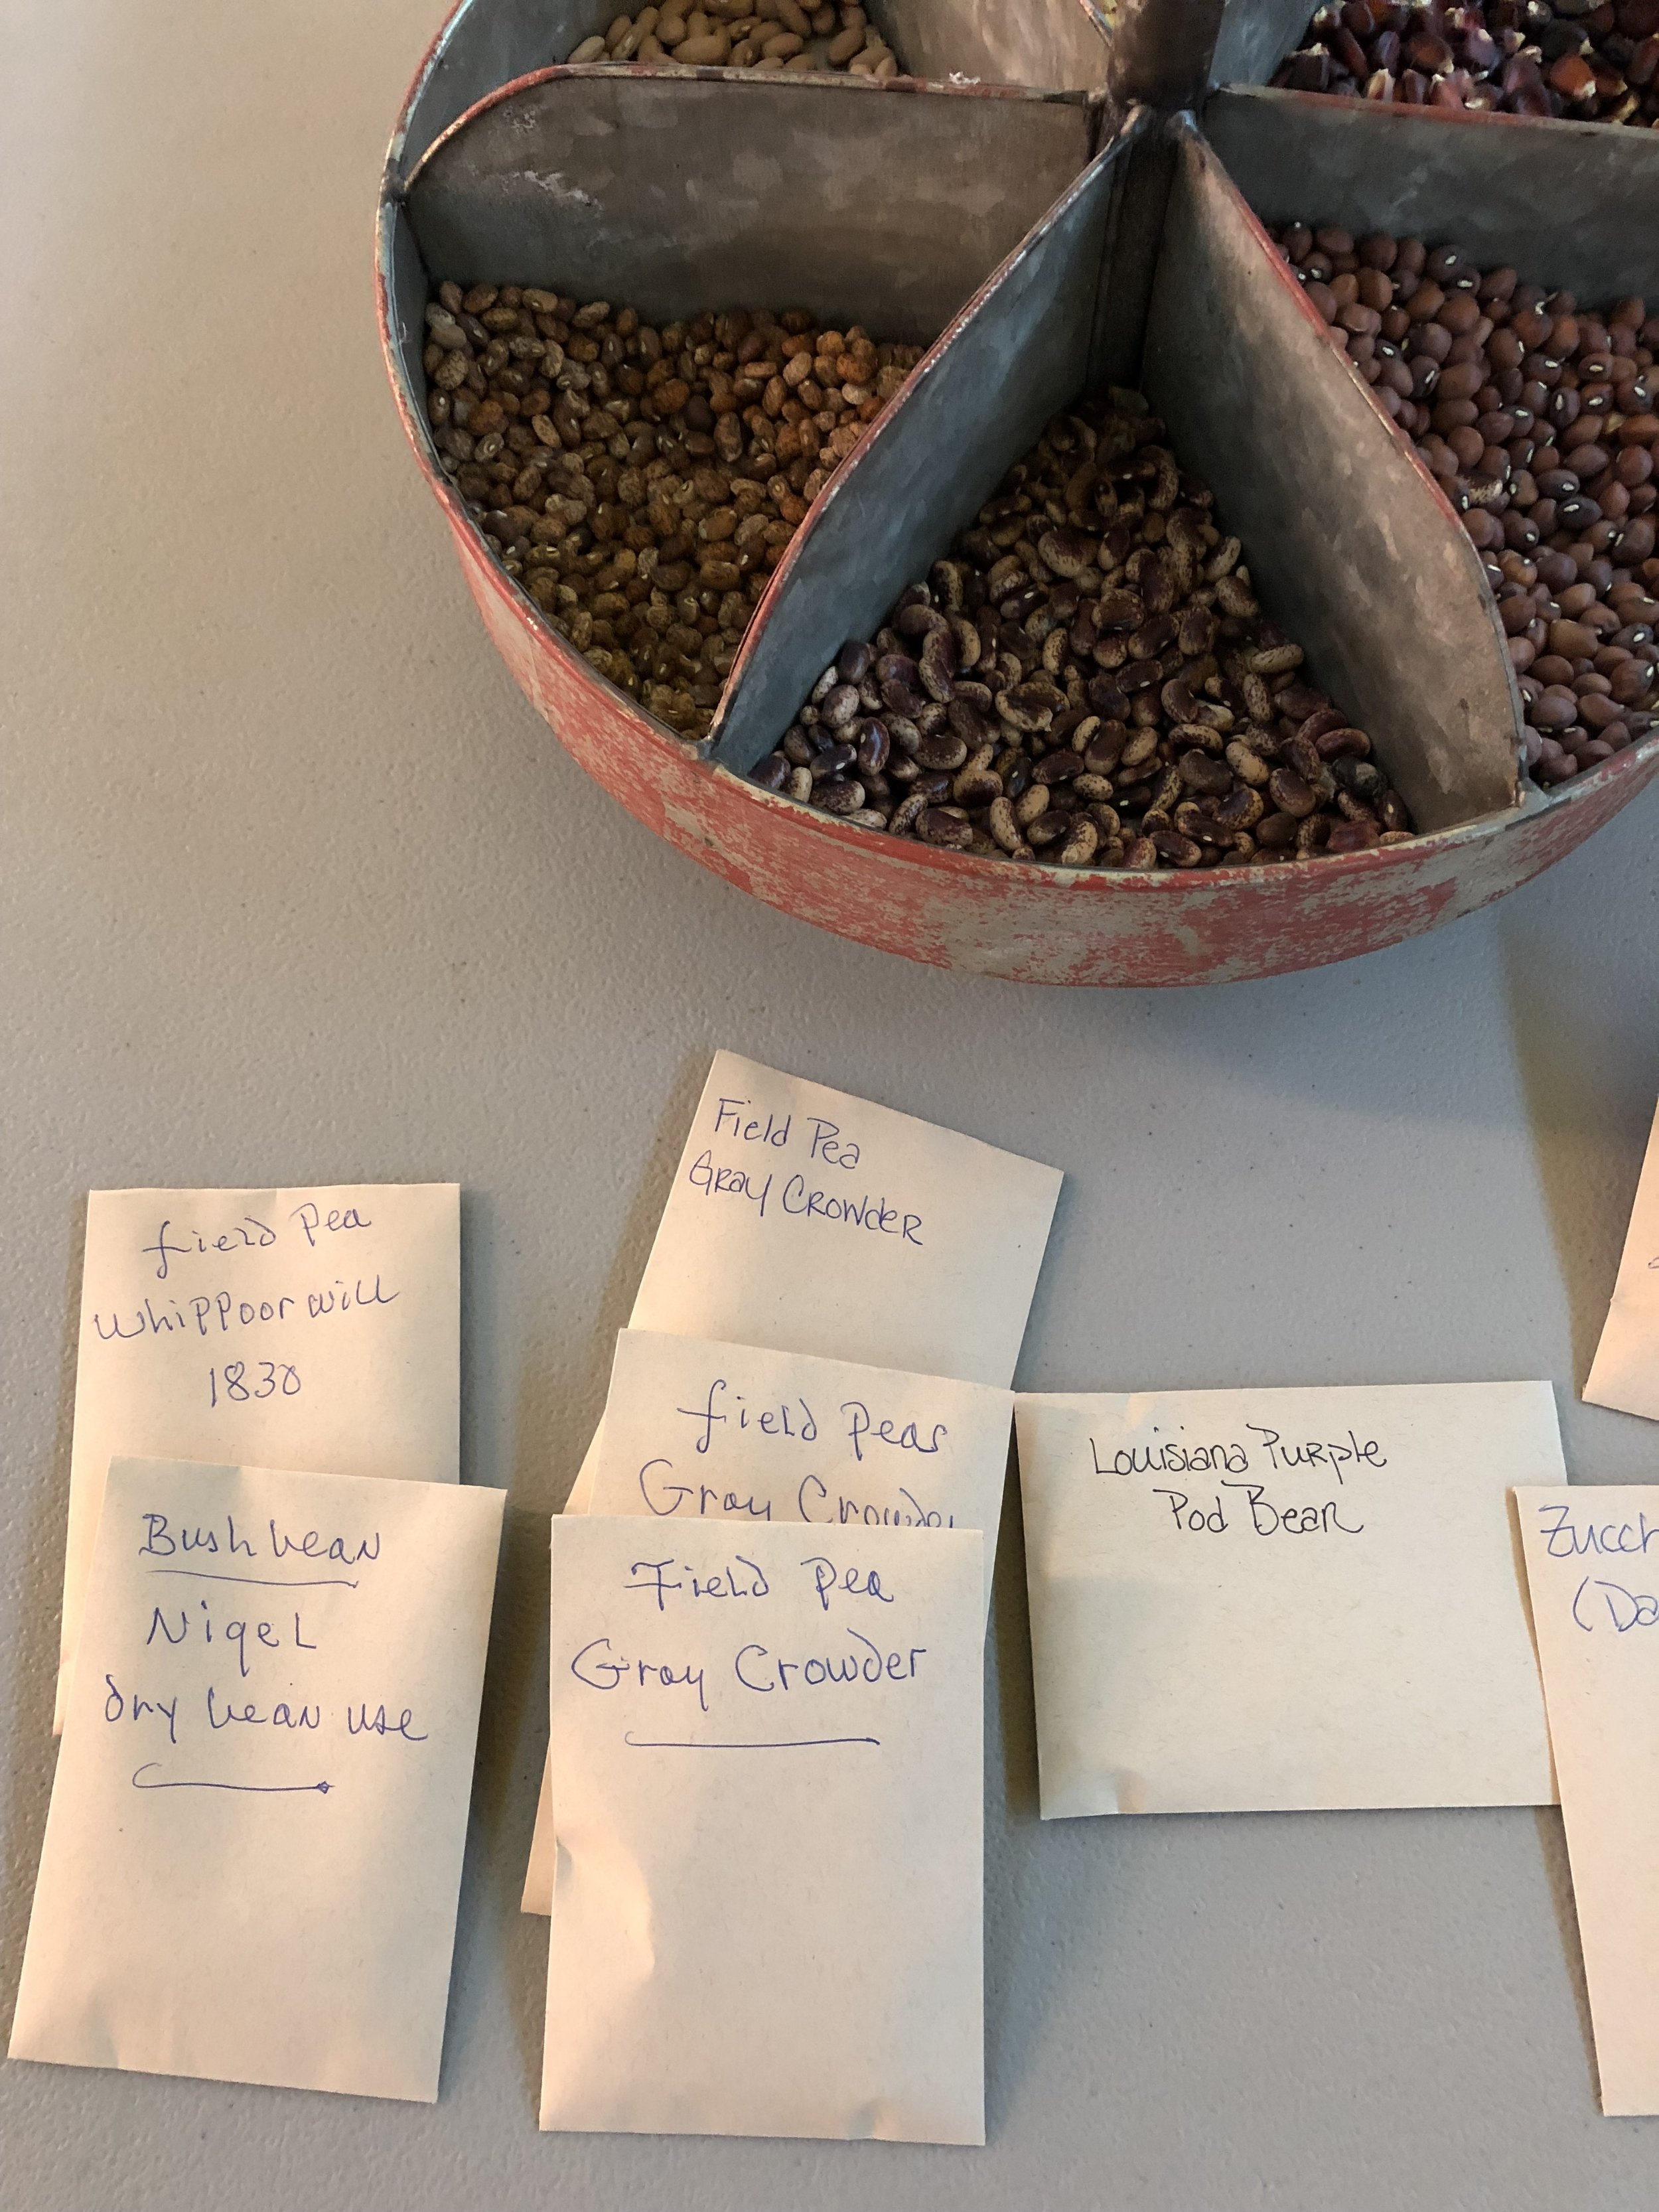 Some seed packs with John's writing.